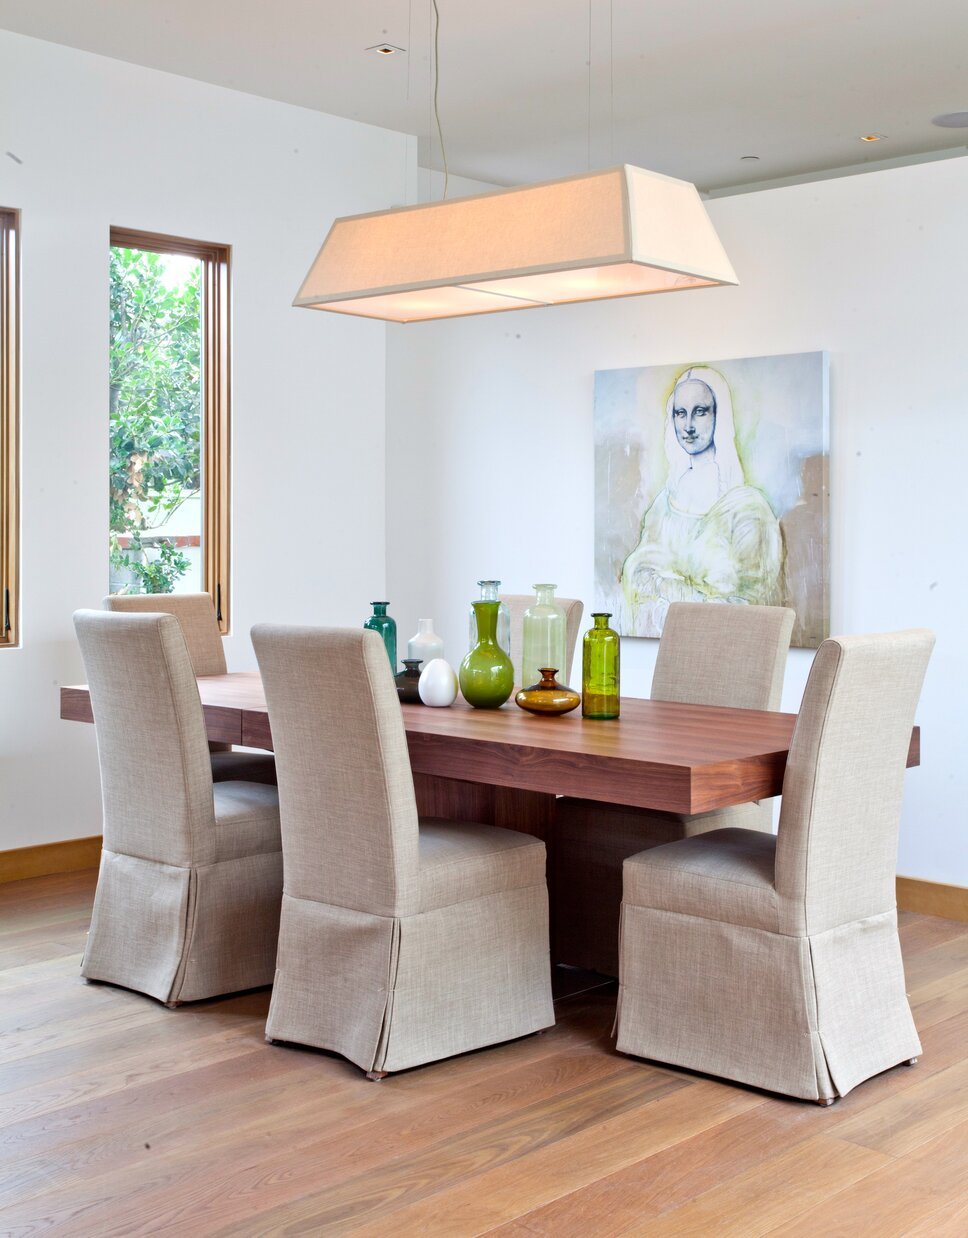 Photo credit Bethany Nauert